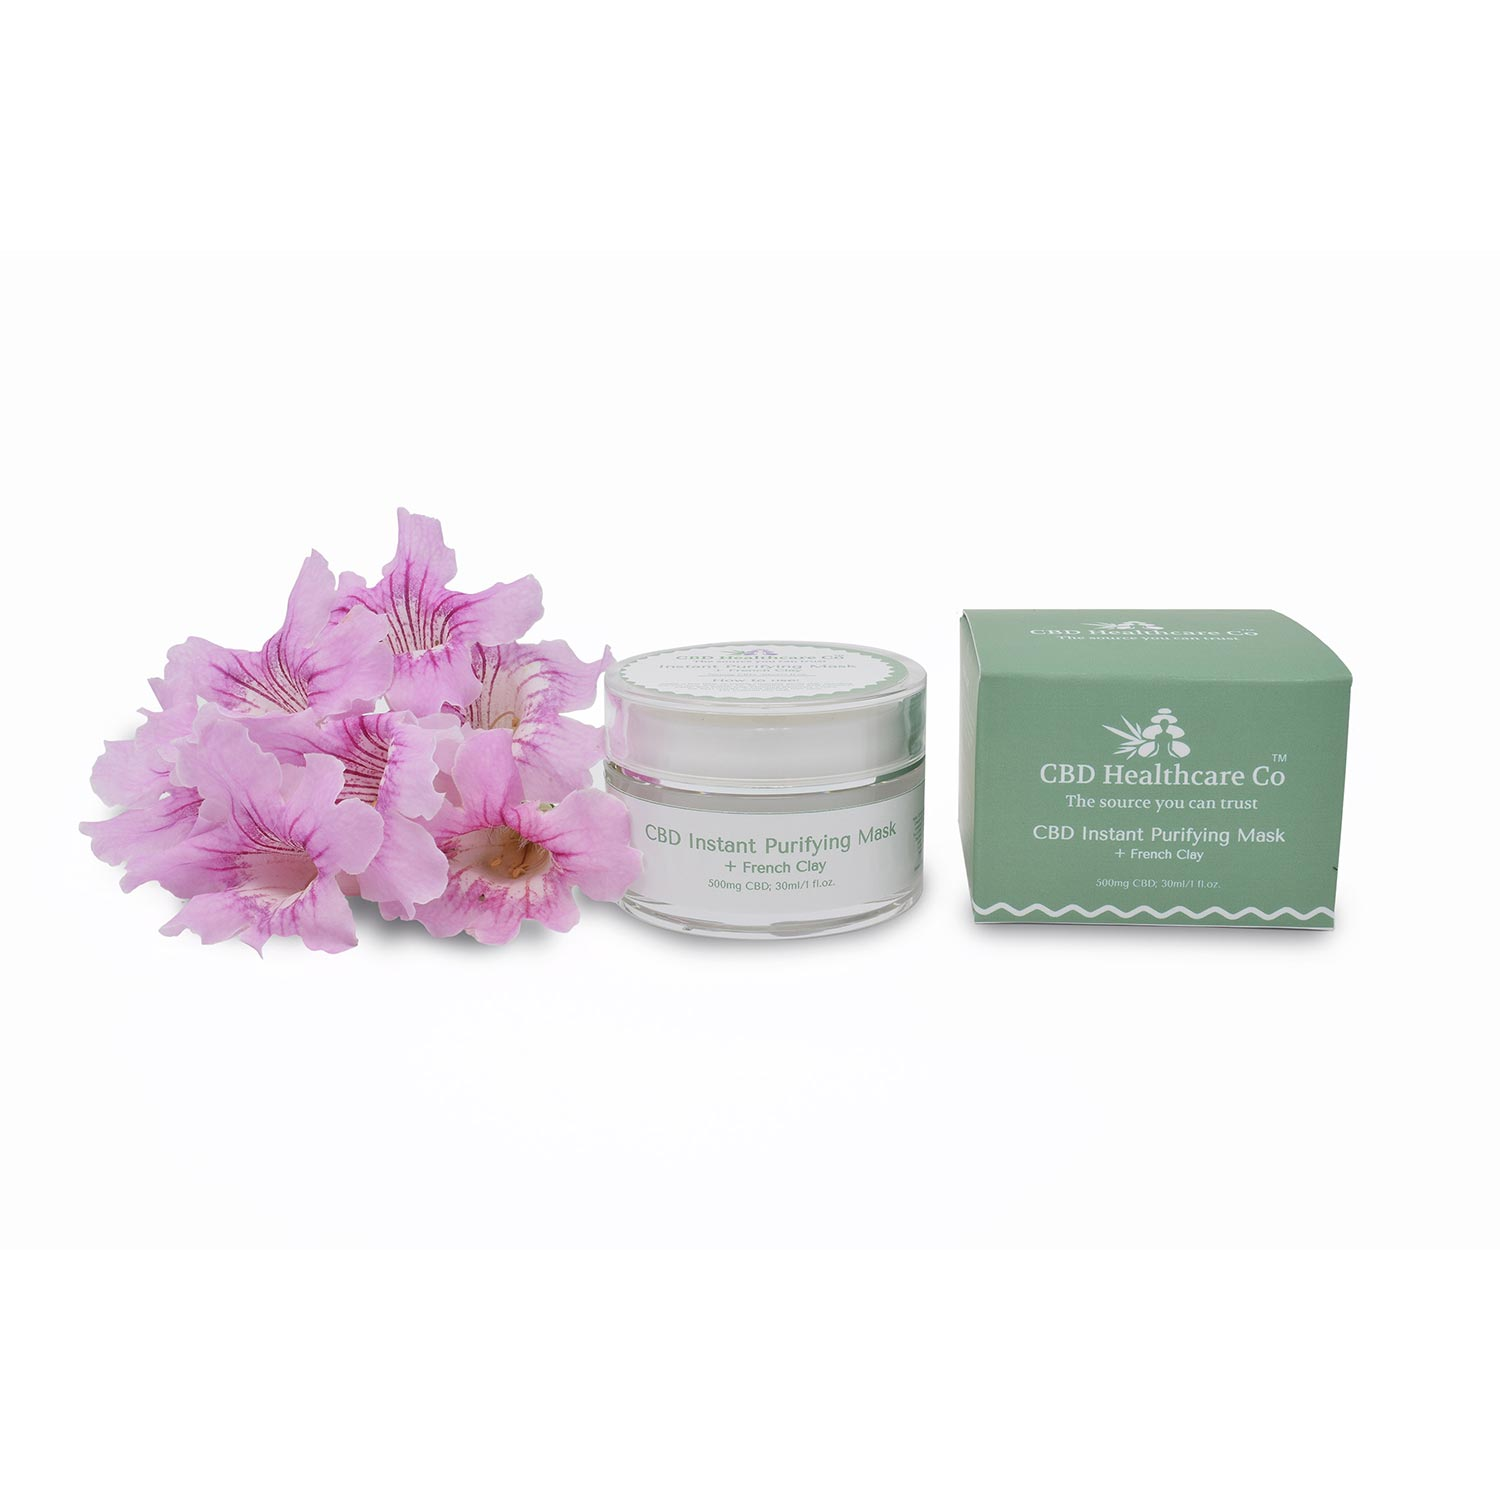 CBD Healthcare Company CBD Instant Purifying Mask